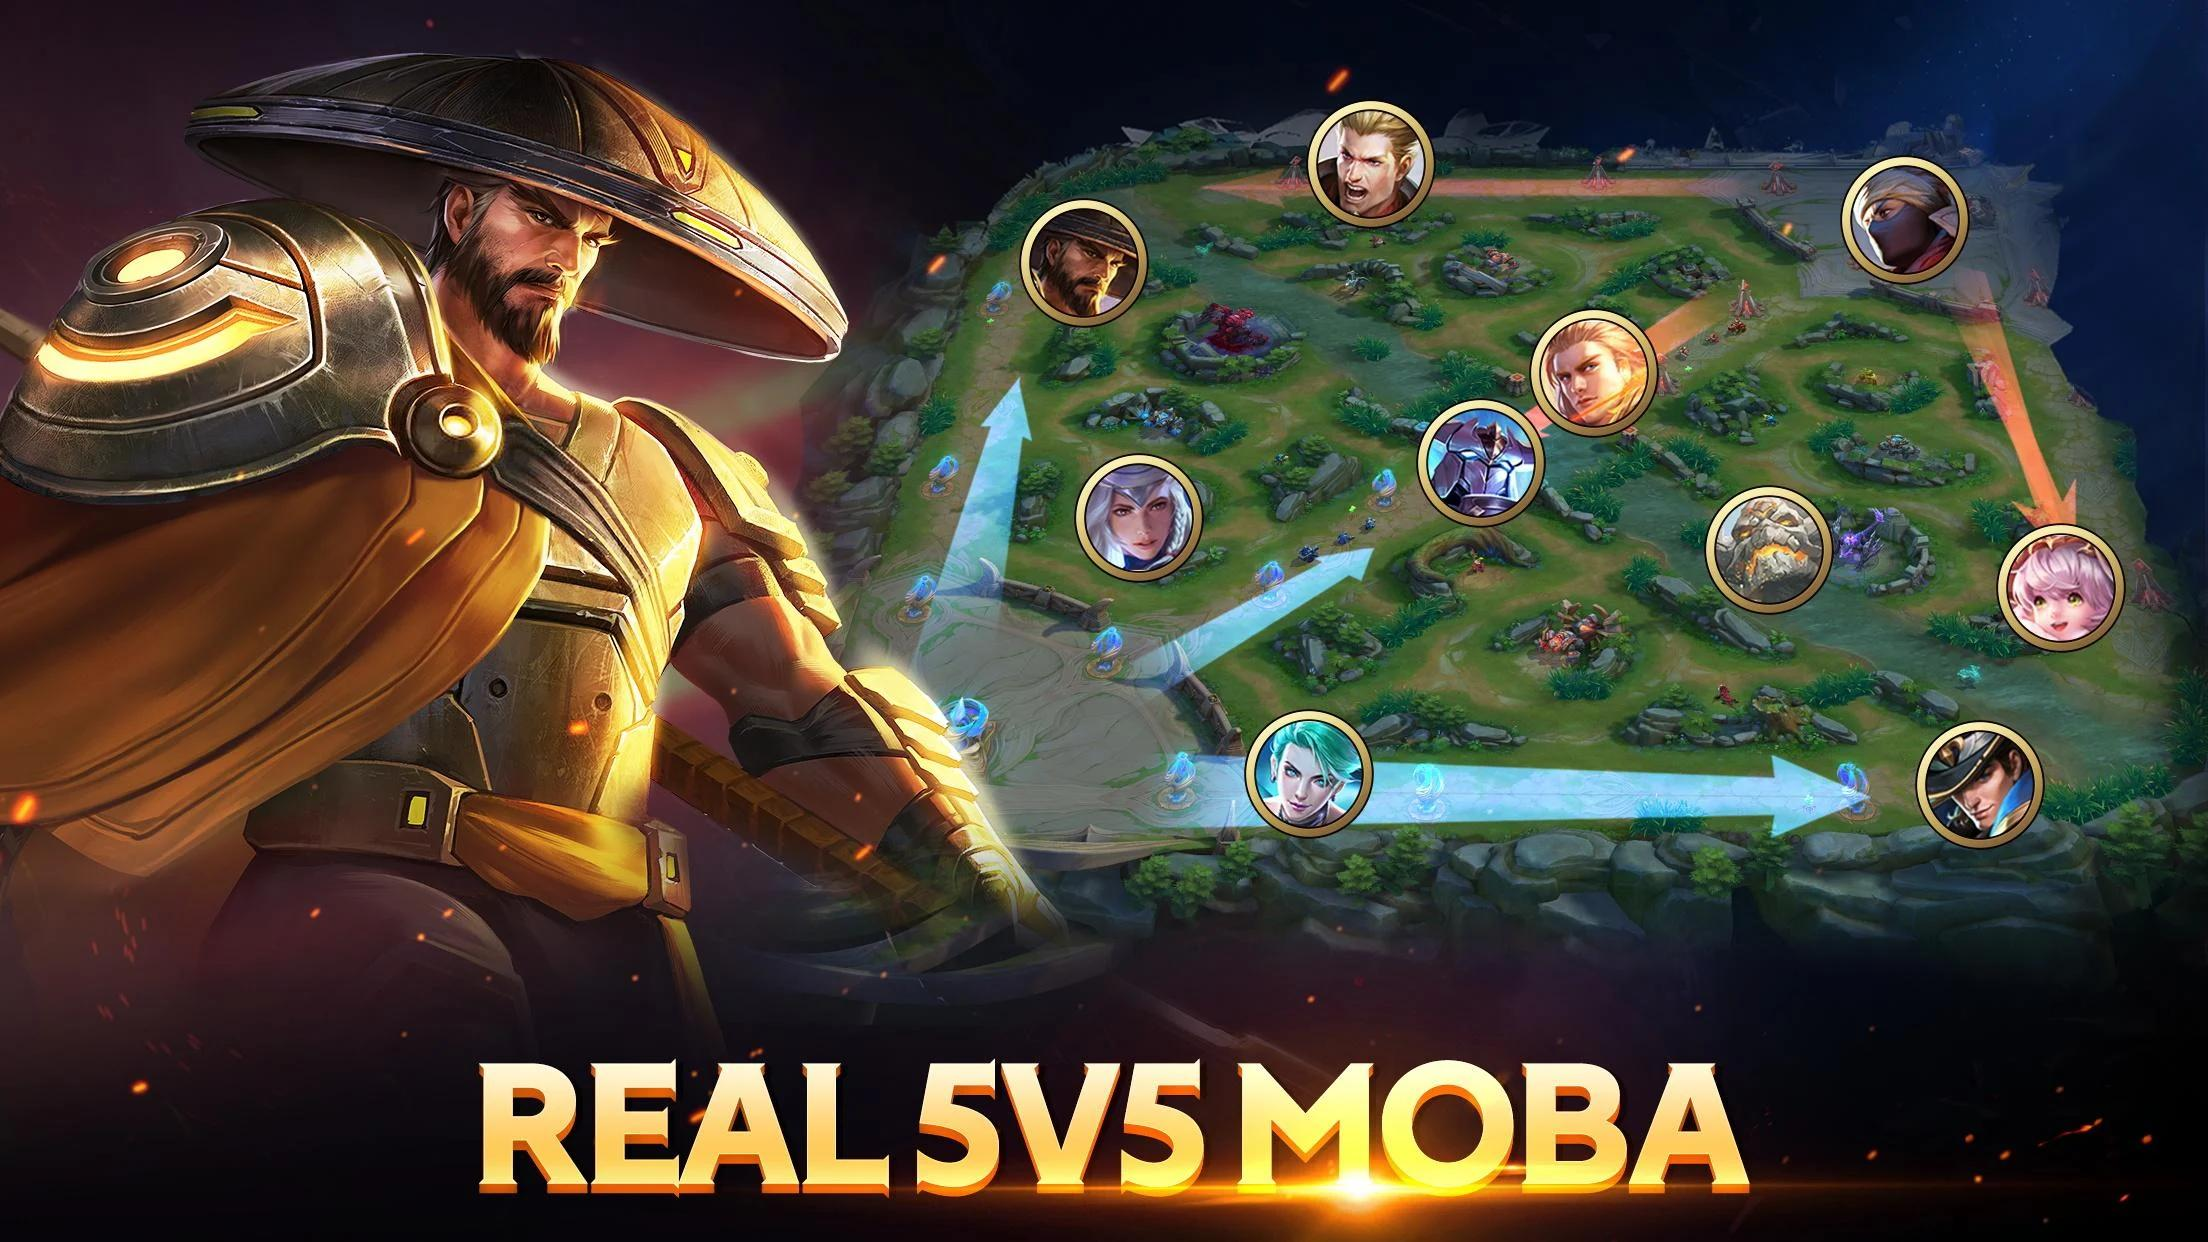 Arena of Valor for Android - APK Download